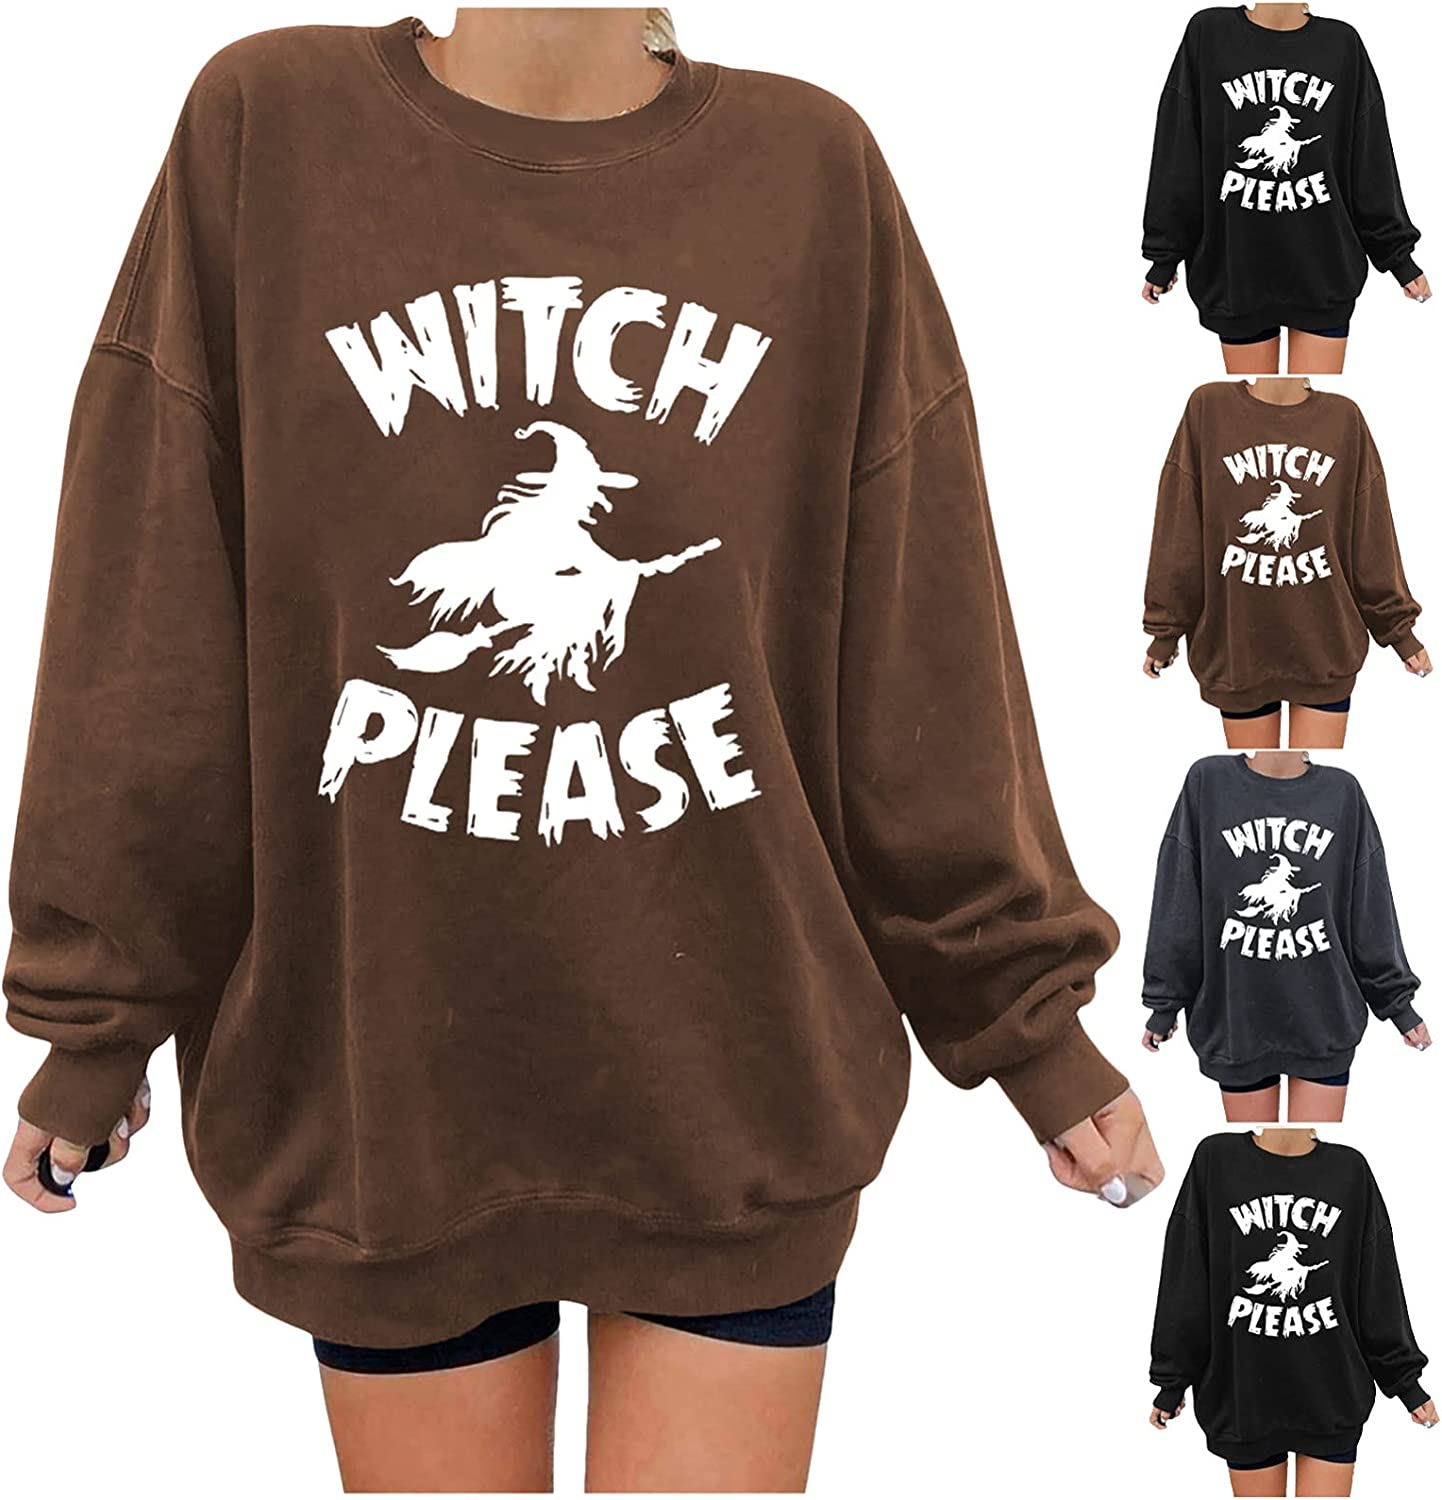 Lingbing Halloween Costumes for Women Casual Crewneck Sweatshirts Funny Witch Graphic Tops Fall Fleece Oversized Blouses